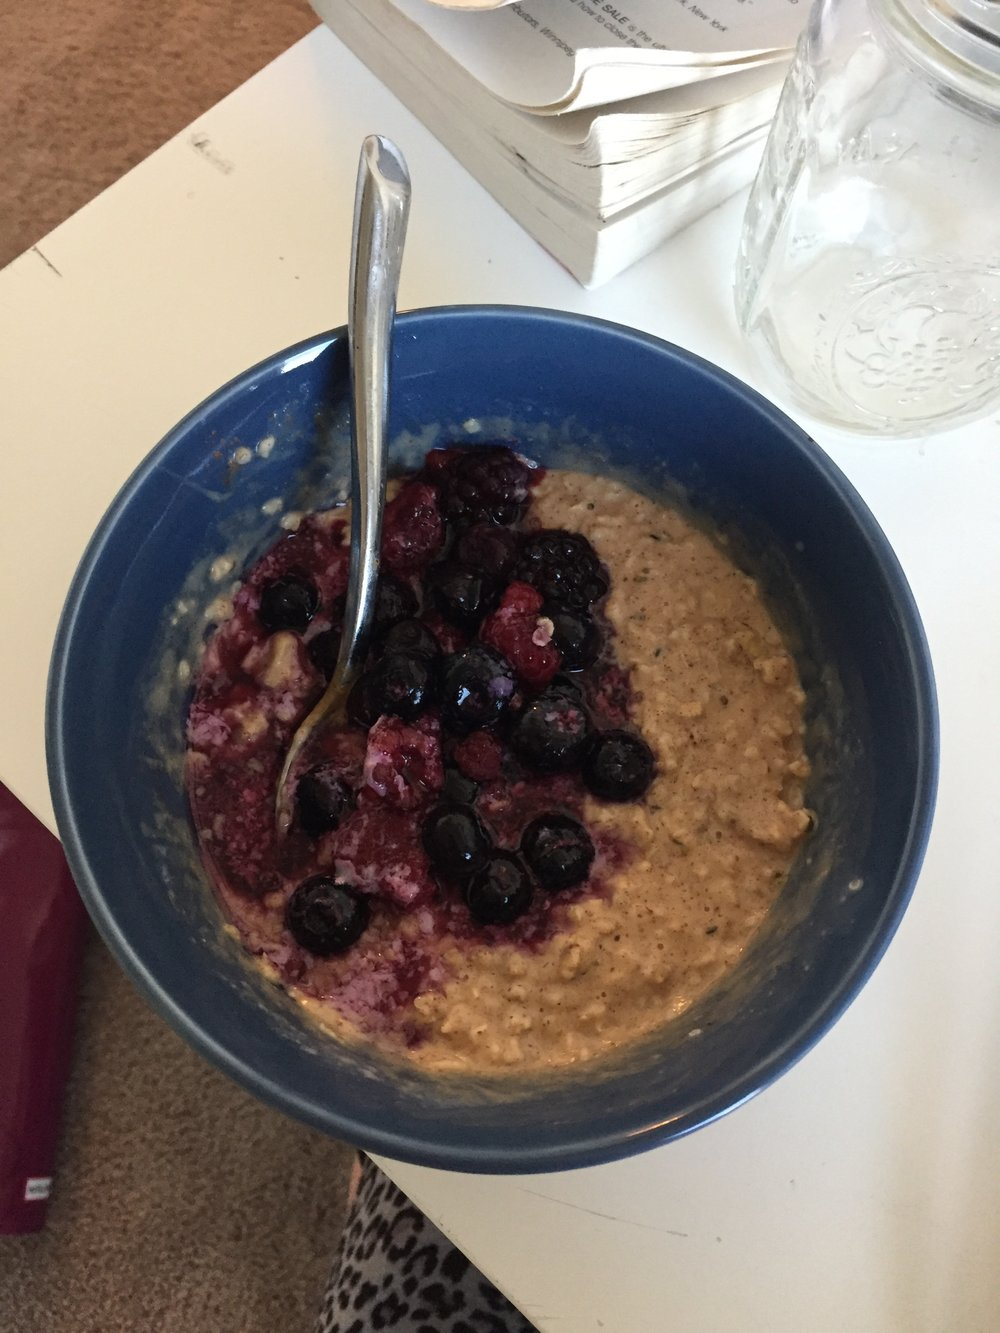 The World's Best Oats - -1/3 cup organic oats (use steel cut if you have them)-walnuts-hemp seeds-1 spoonful of coconut oil-cinnamon-cover in unsweetened almond milk  to cook-stir in Wild Friends Almond Butter-top with berries